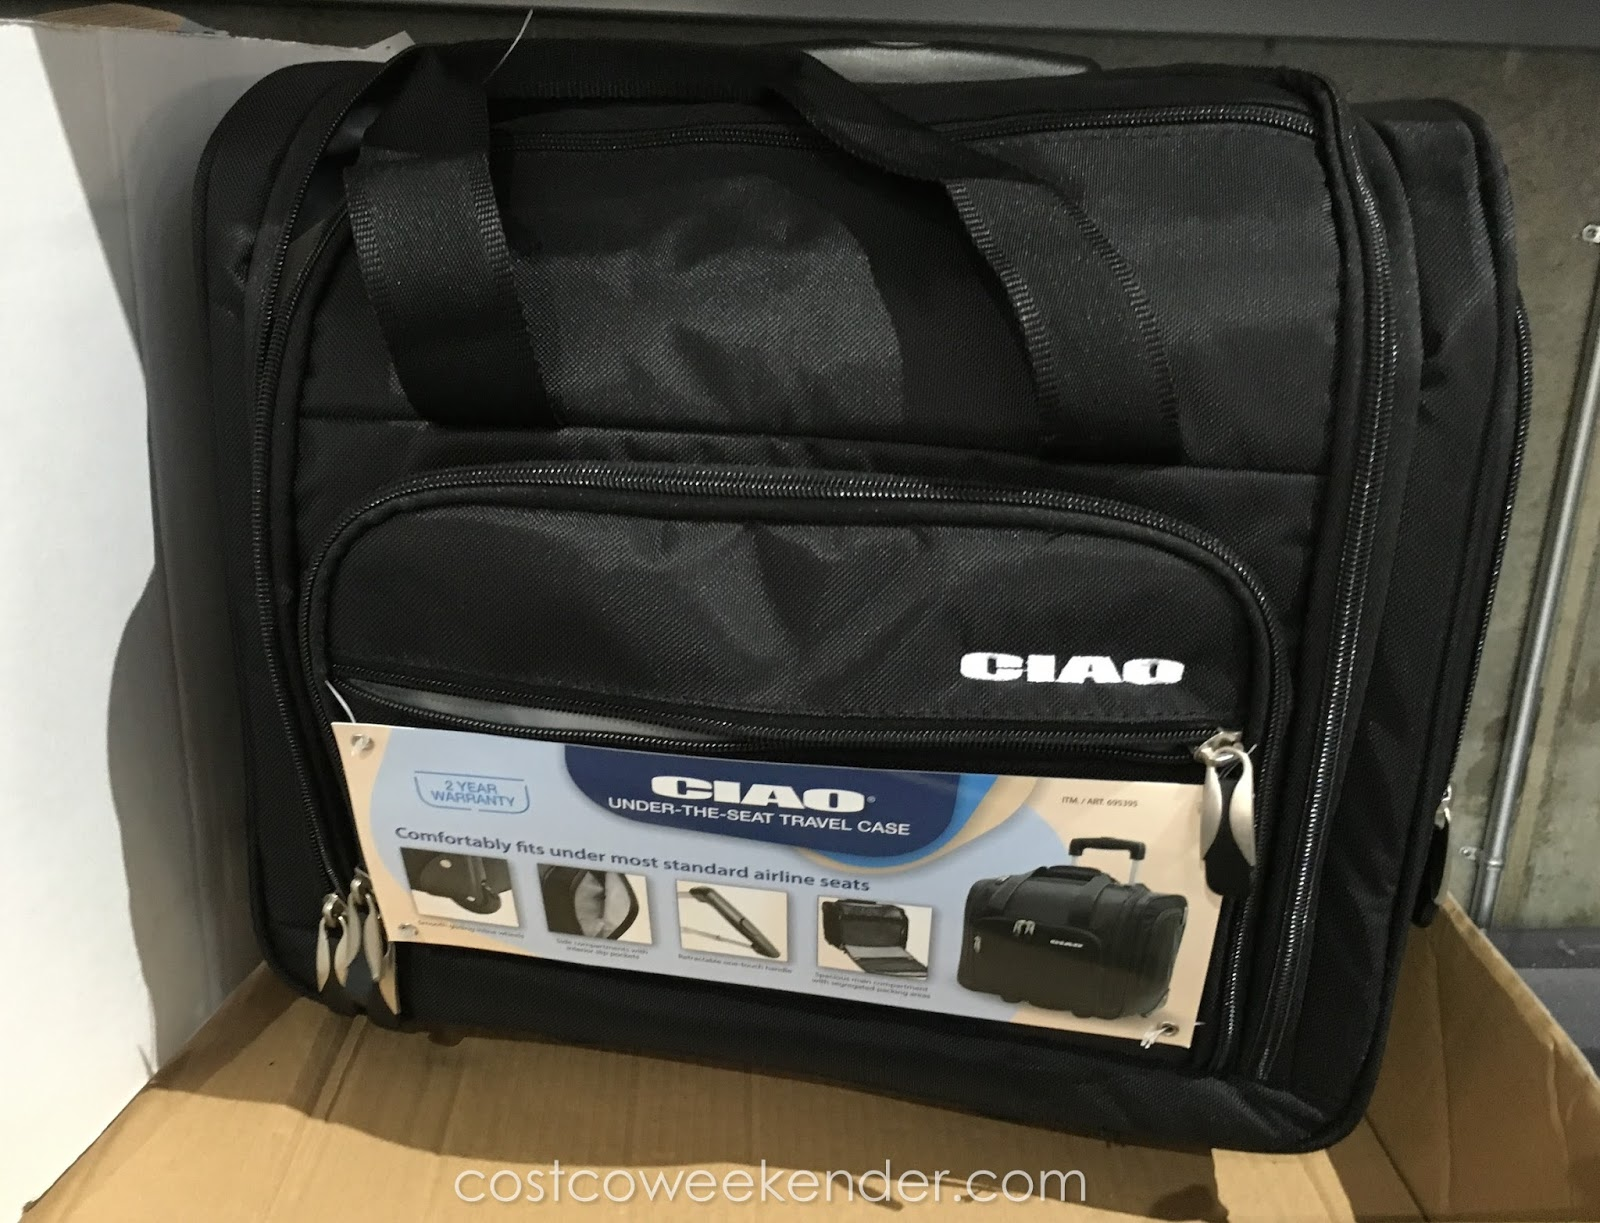 Ciao Under The Seat Travel Case Costco Weekender